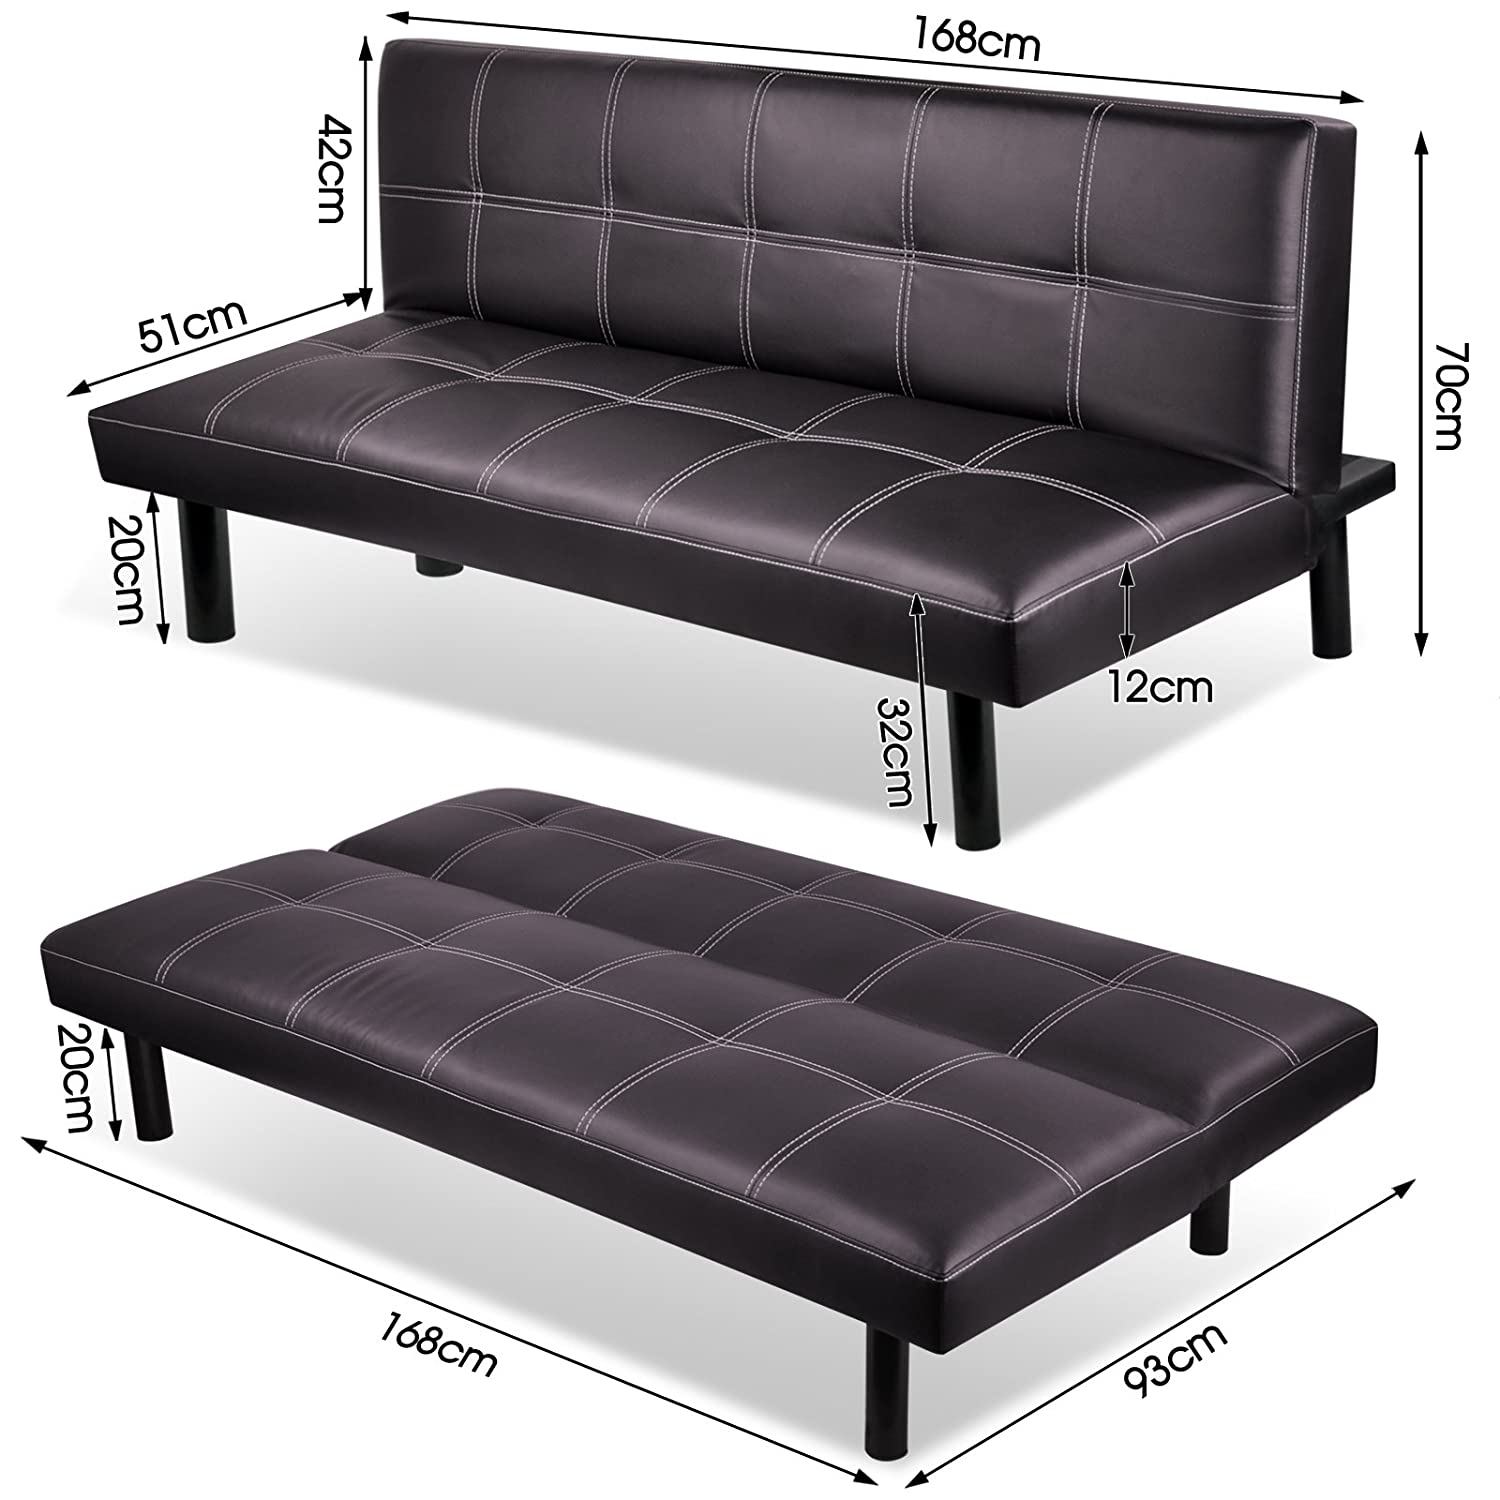 fold down sofa sleeper how to make cushions covers 3 seater modern pu leather bed living room